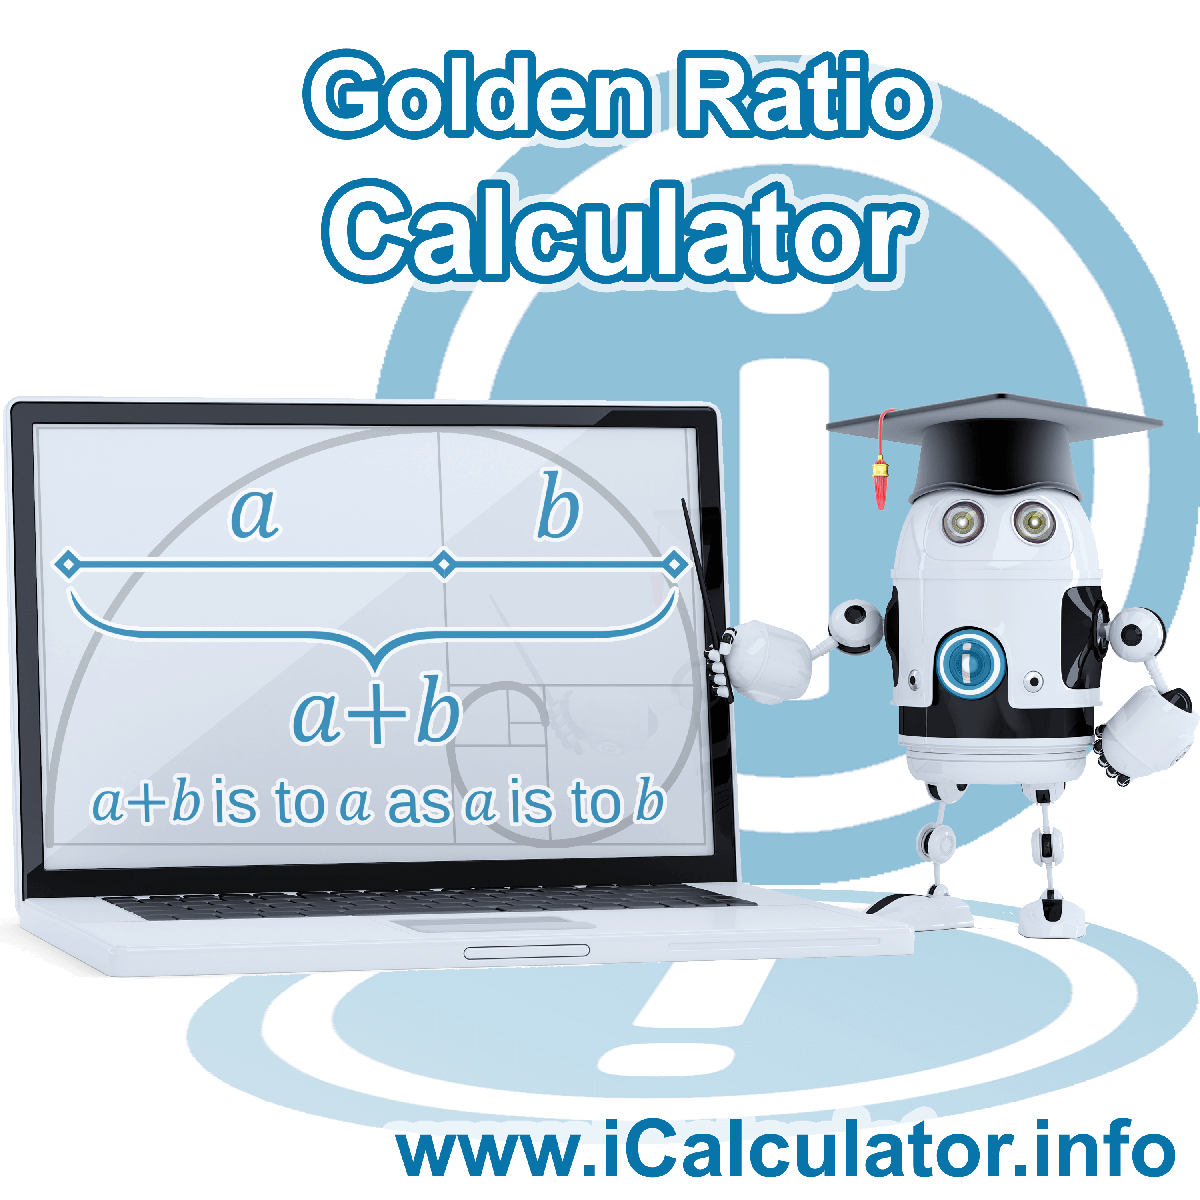 Golden Ratio Calculator. This image shows Golden Ratio formula with associated calculations used by the Golden Ratio Calculator